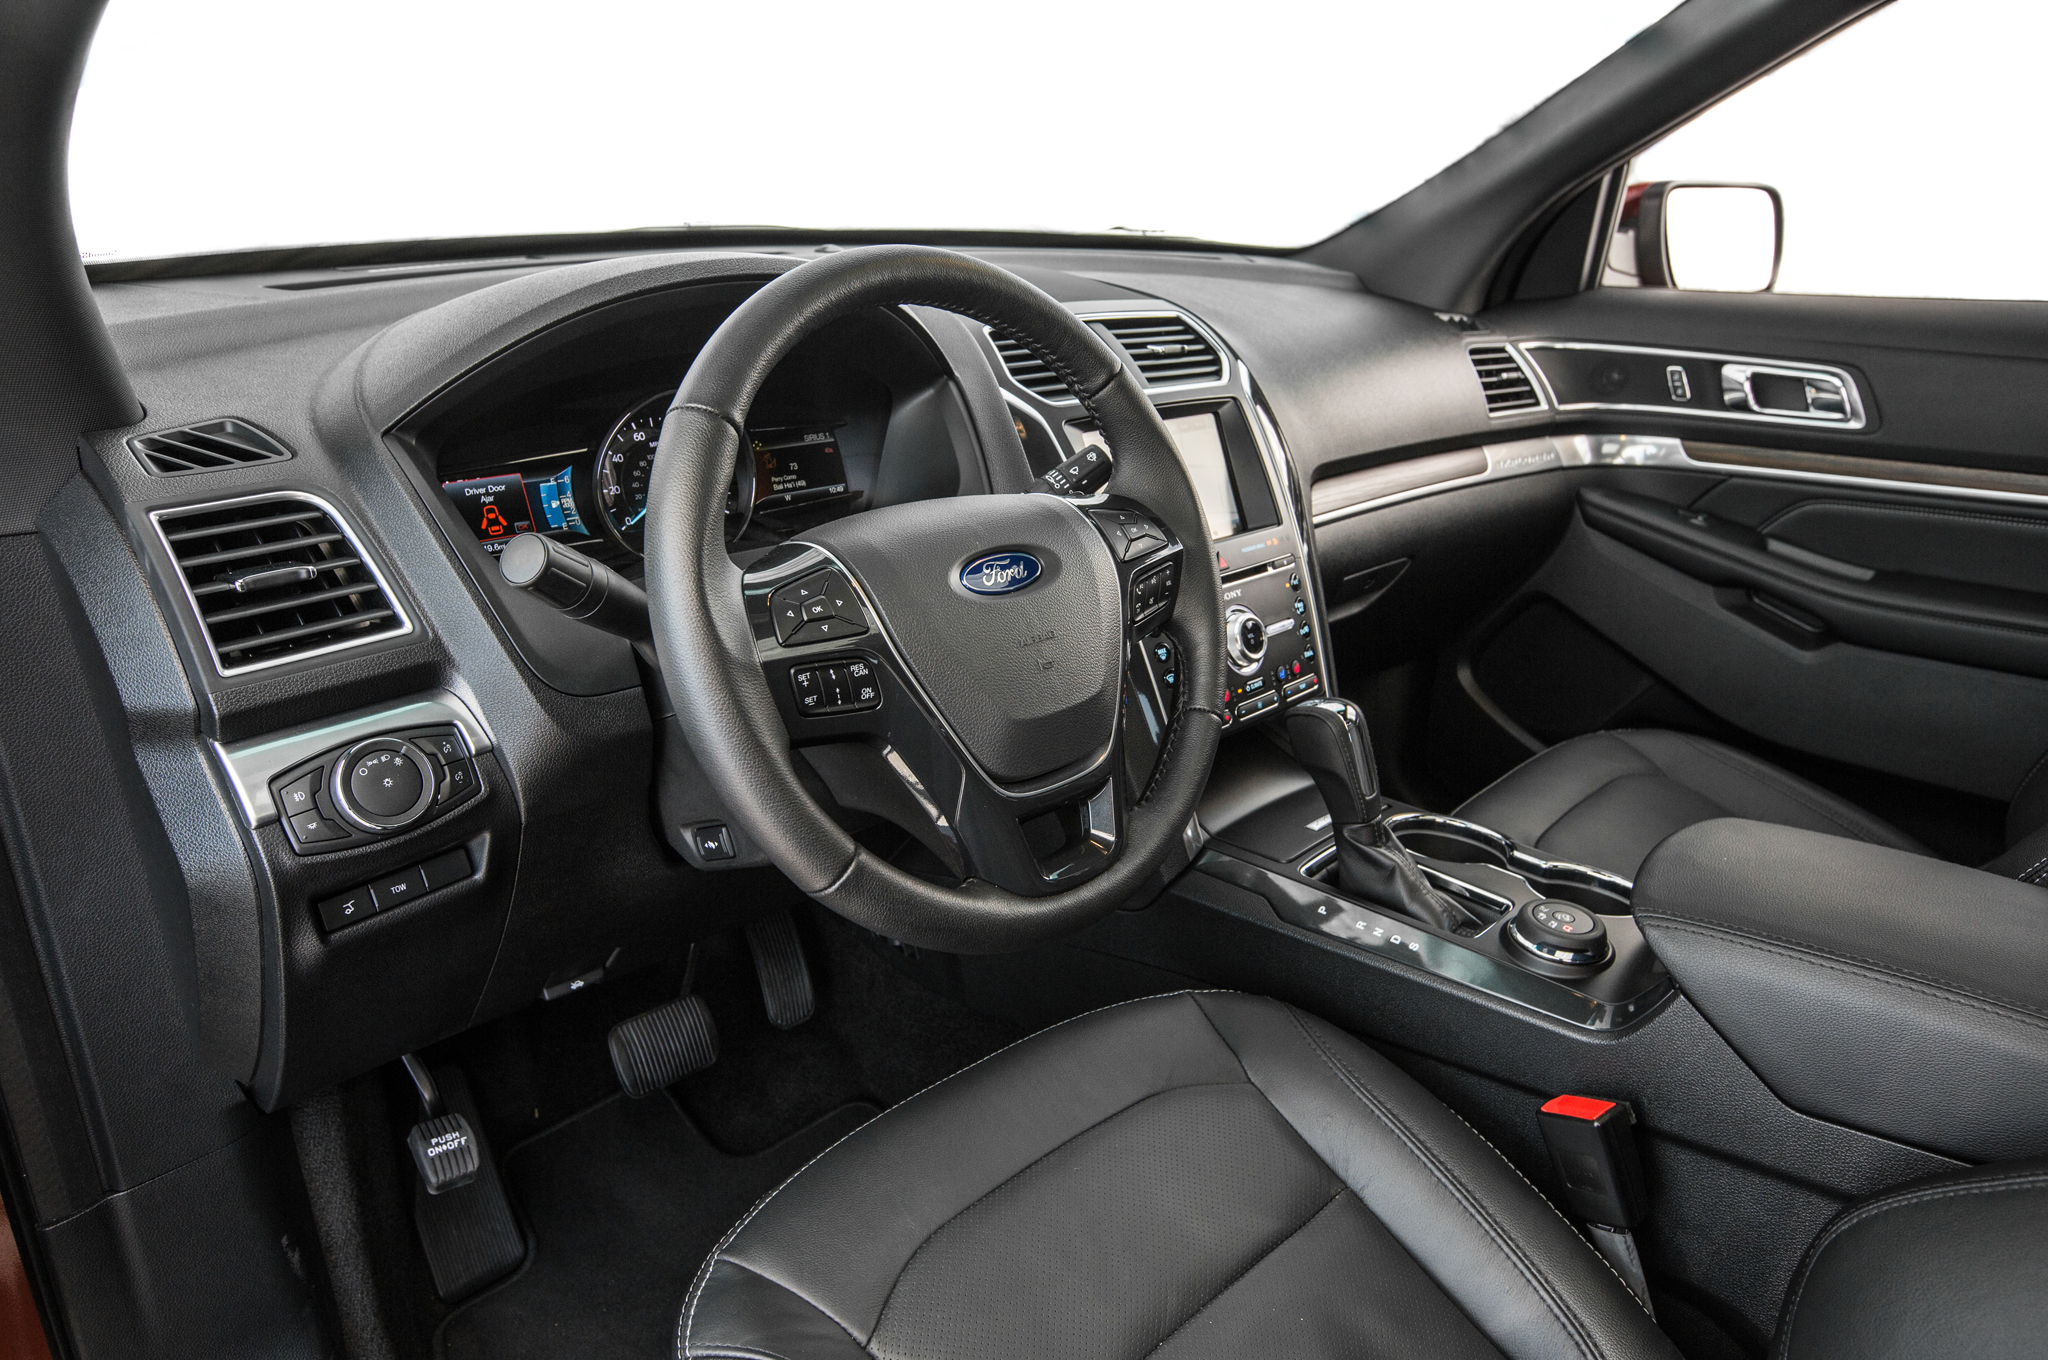 2016 Ford Explorer 2 3L EcoBoost AWD Review - First Test